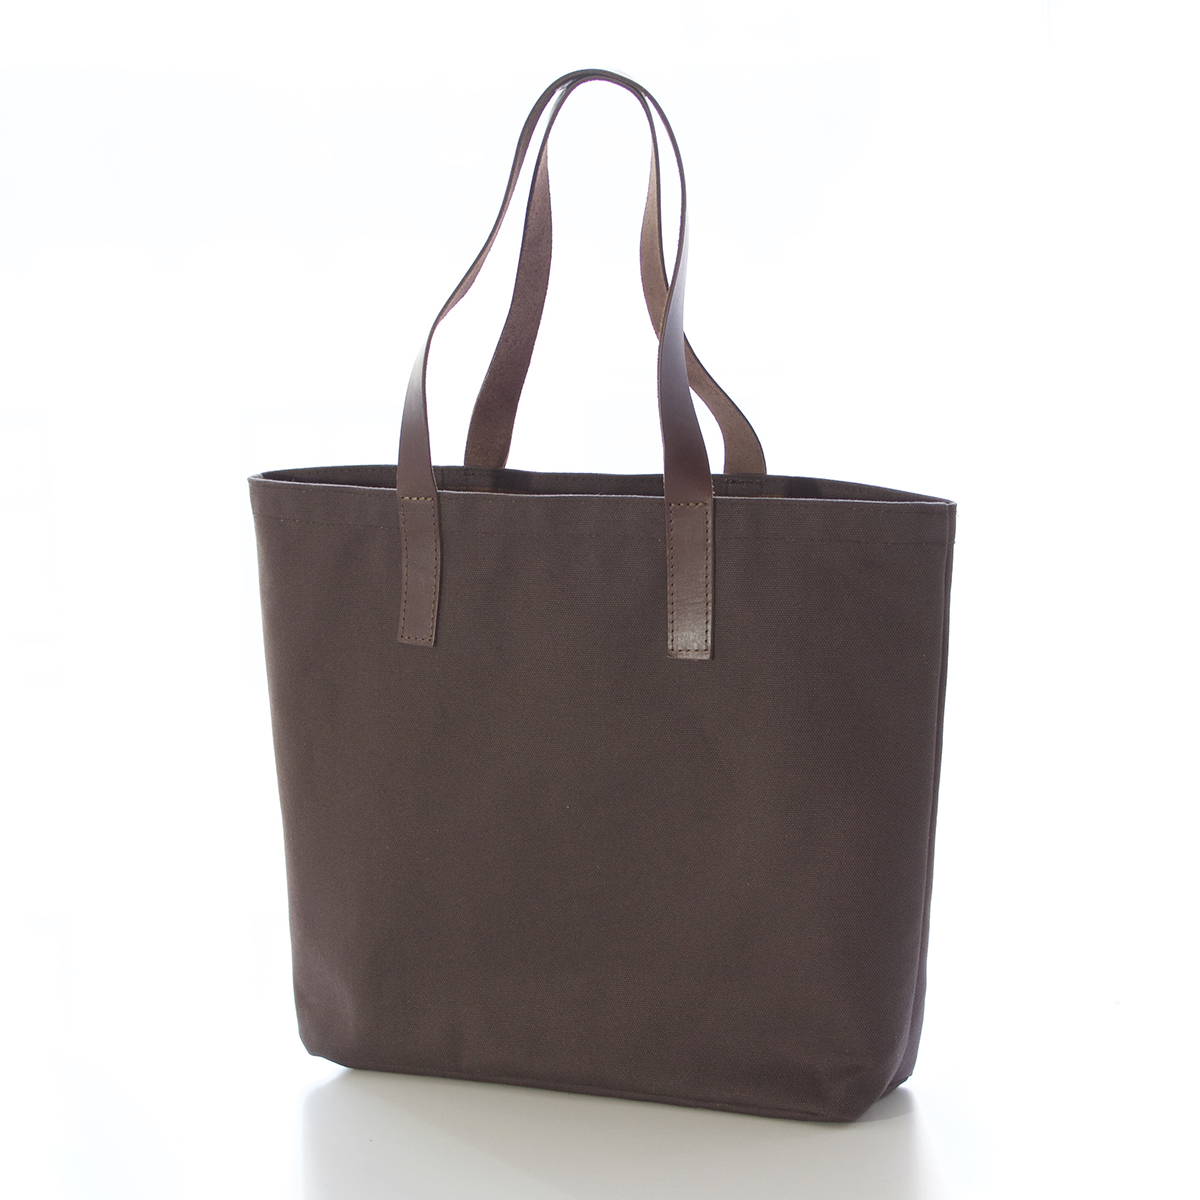 Brown canvas tote with leather handles